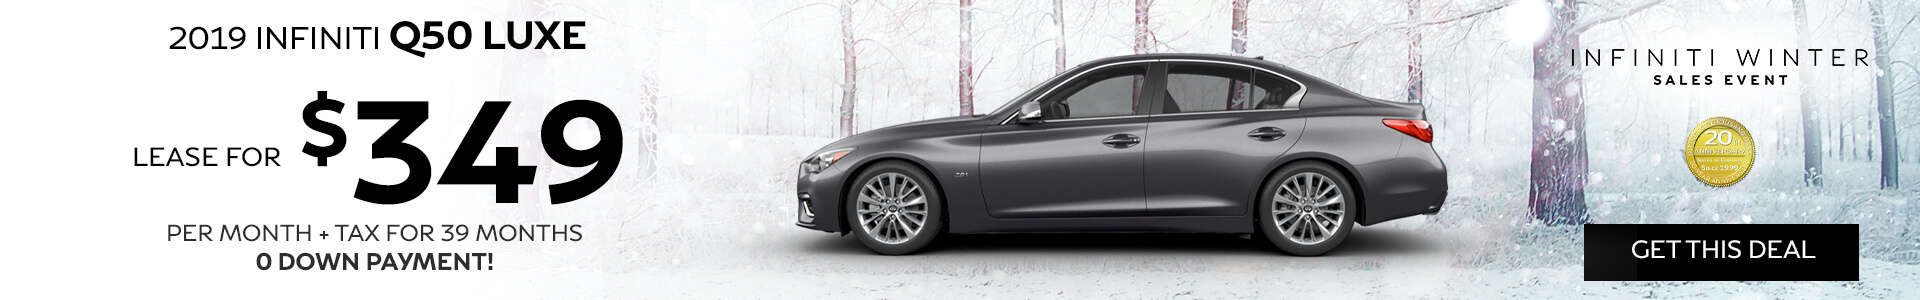 Q50 LUXE - Lease for $349